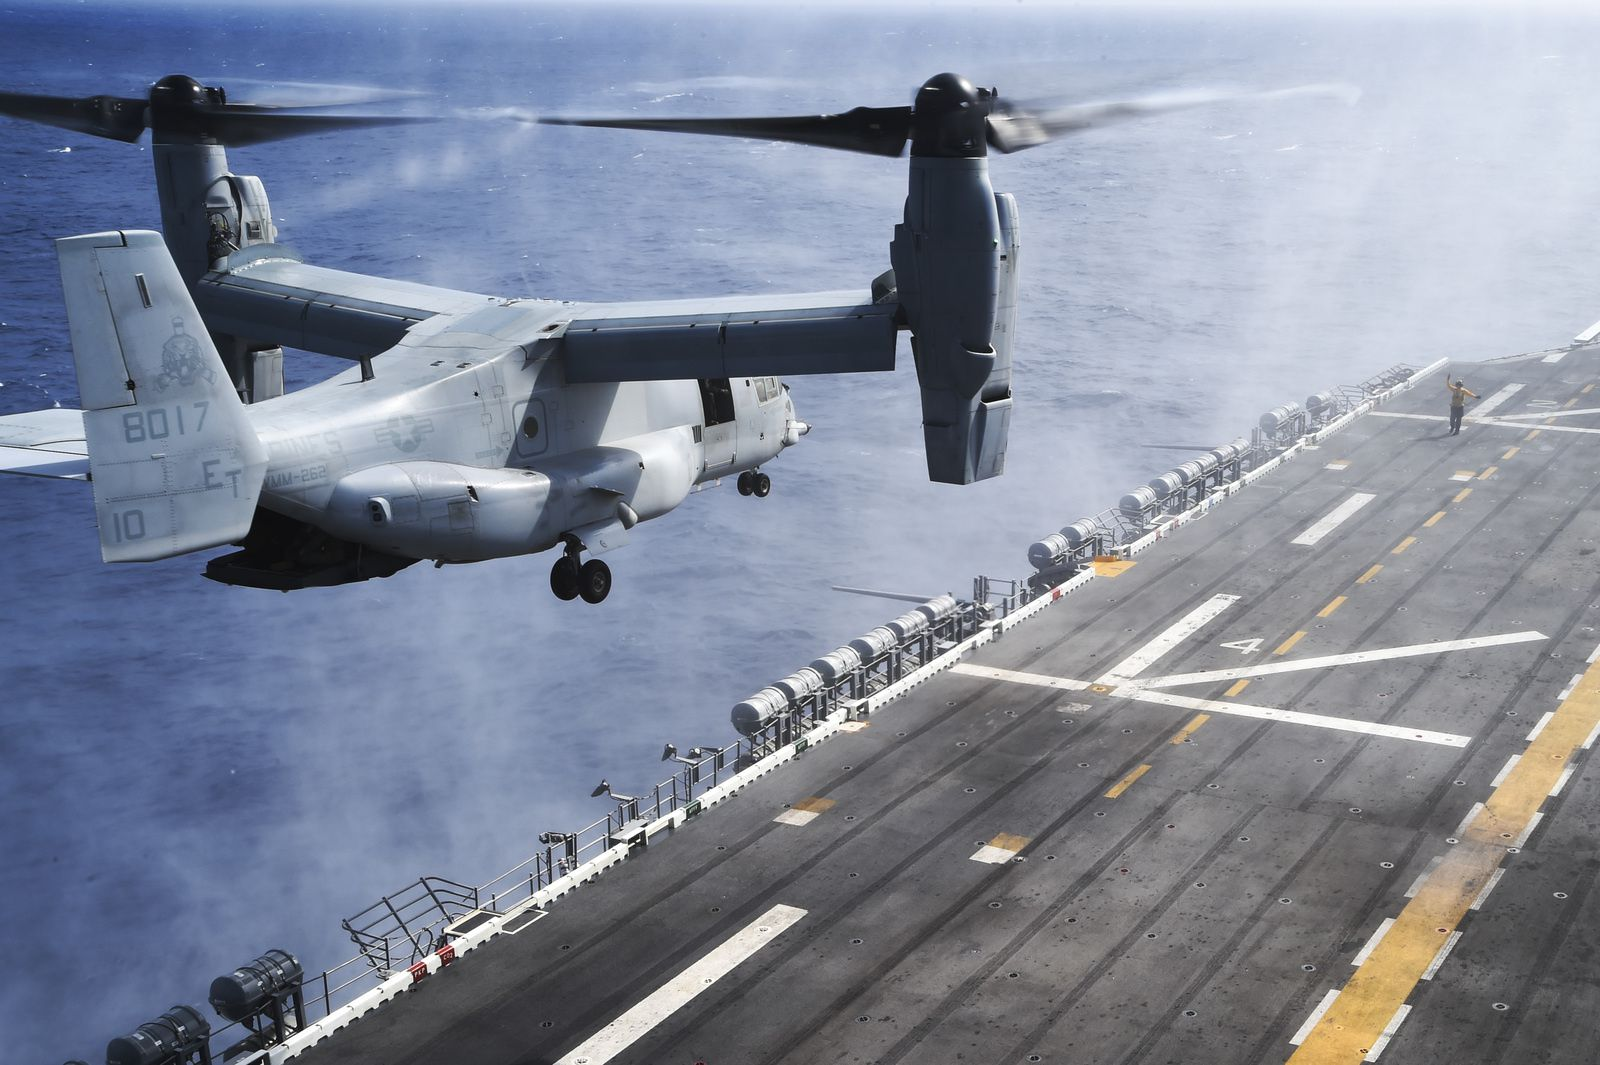 Naval Air: V-22s Are The New COD